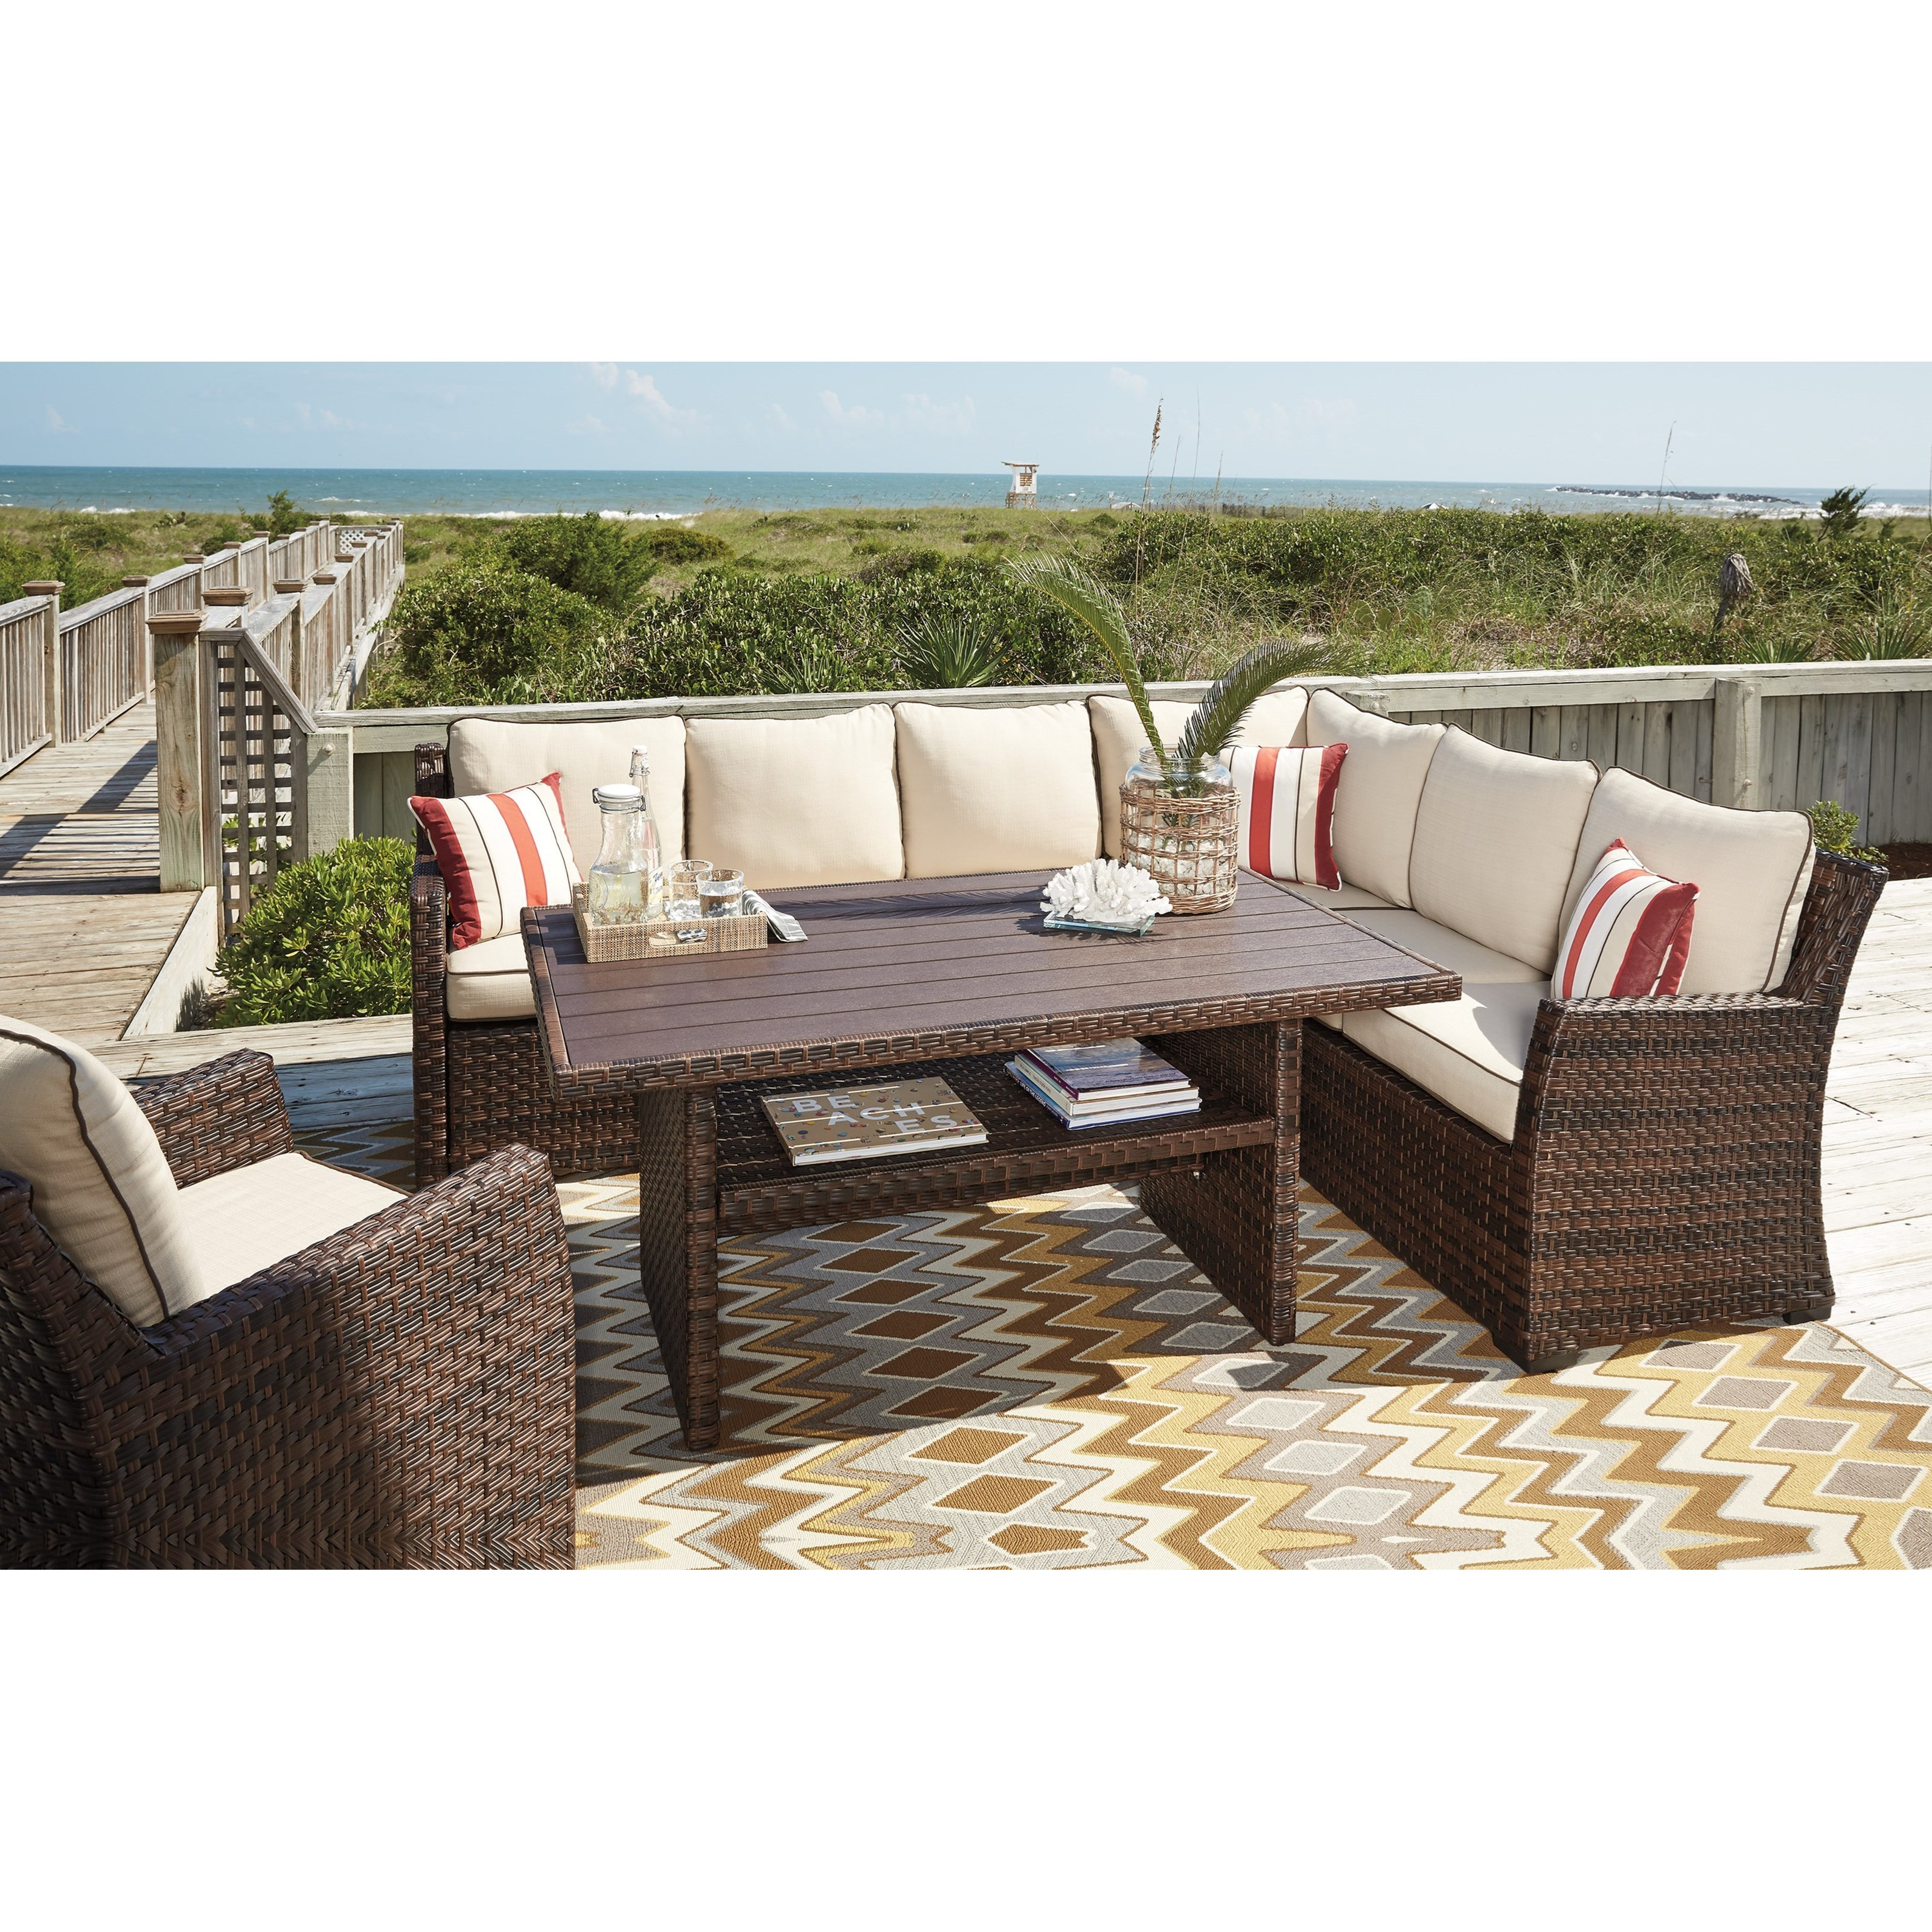 Genial Ashley (Signature Design) SalcedaOutdoor Sectional With Table U0026 Lounge Chair  ...